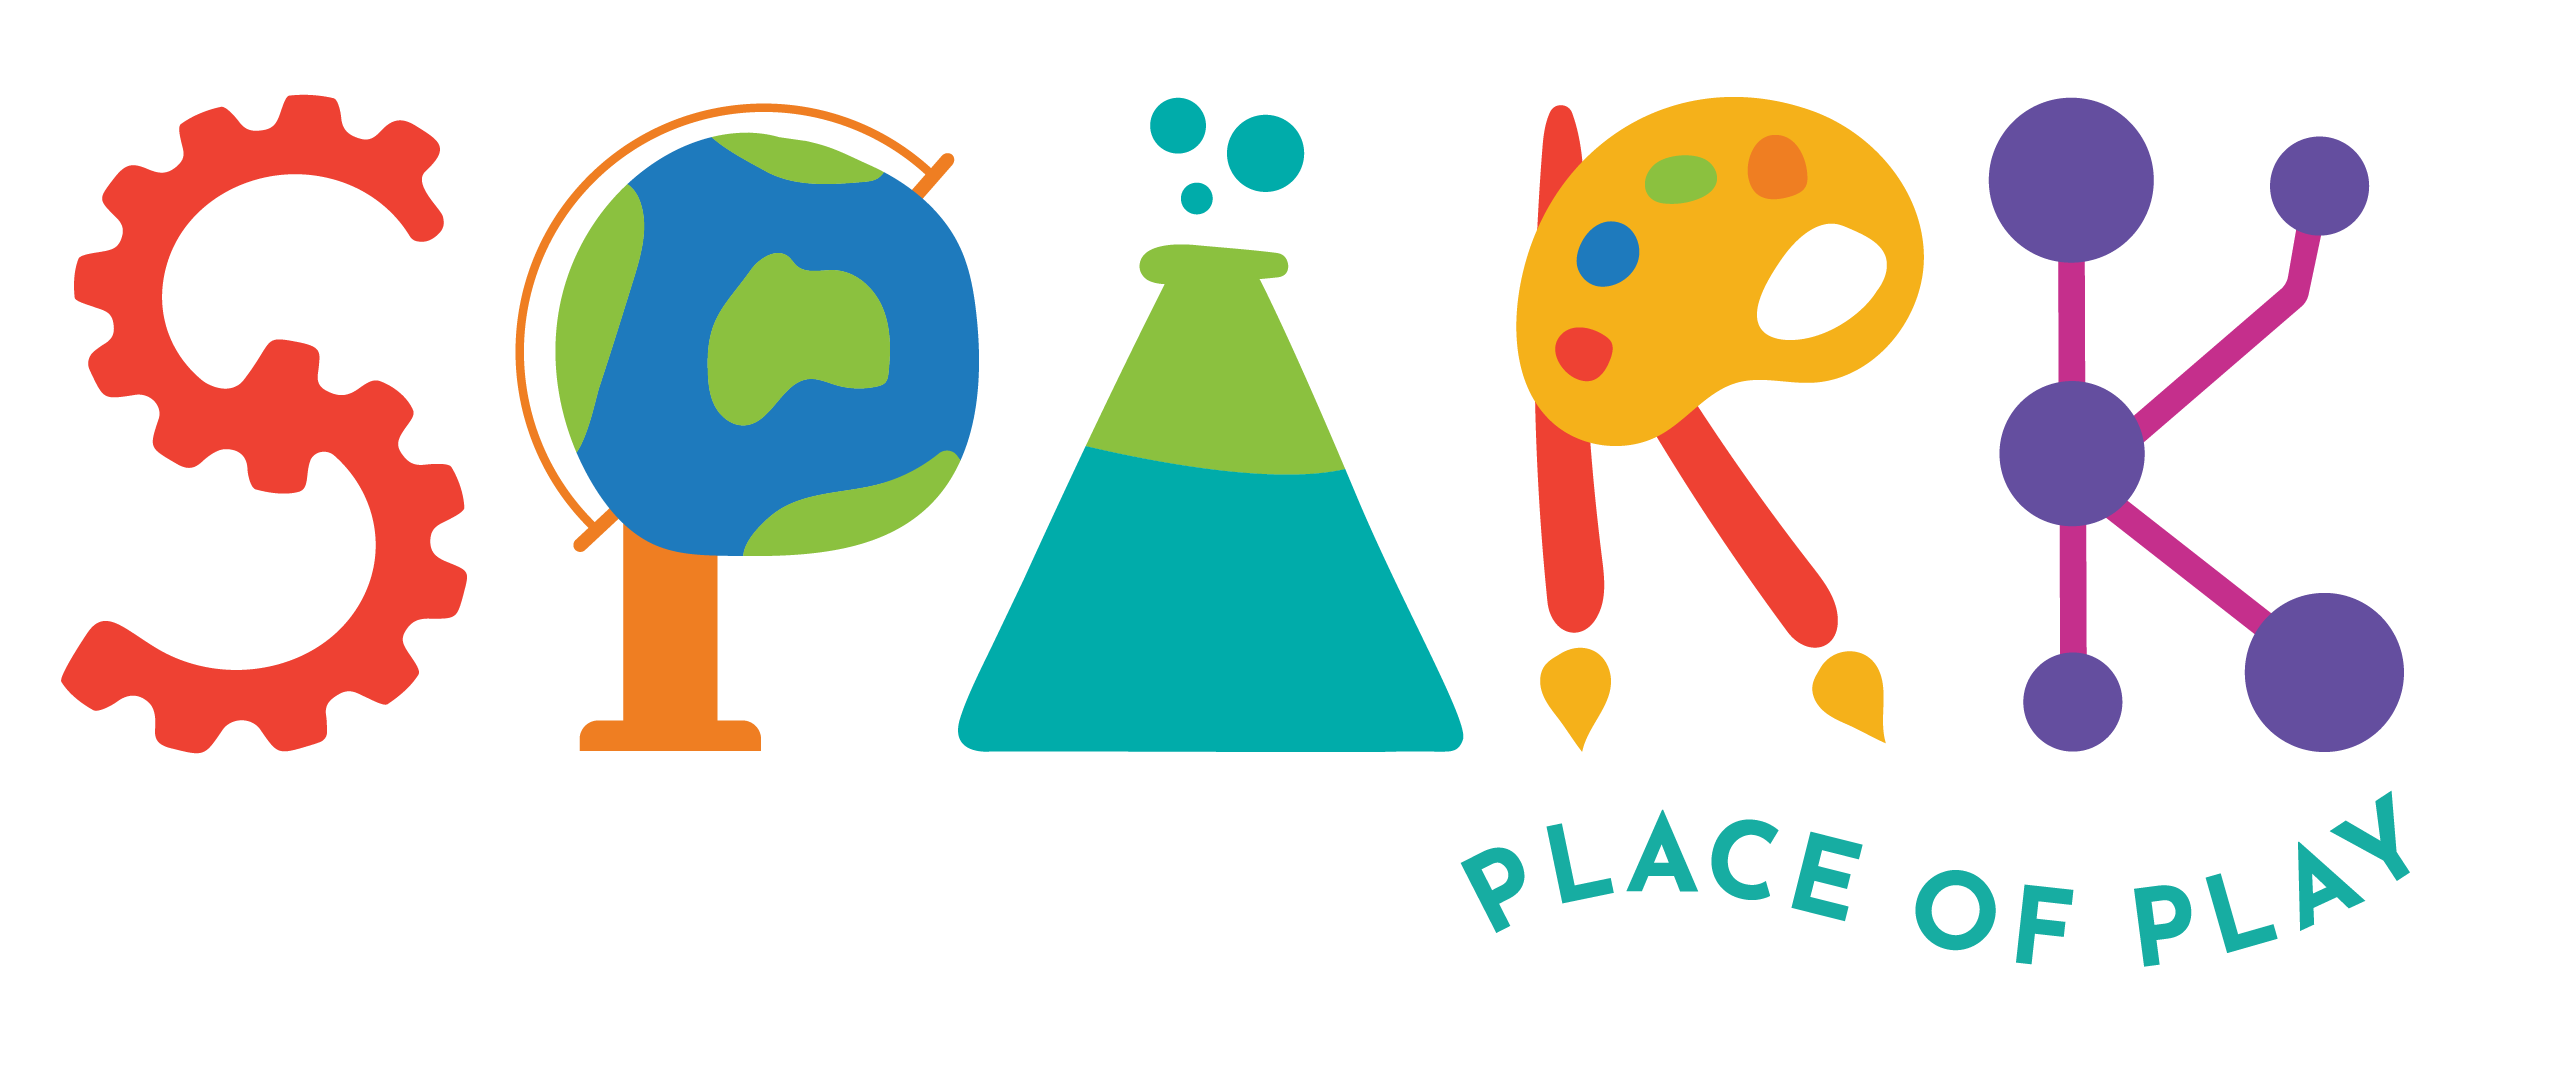 Spark - Place Of Play Logo